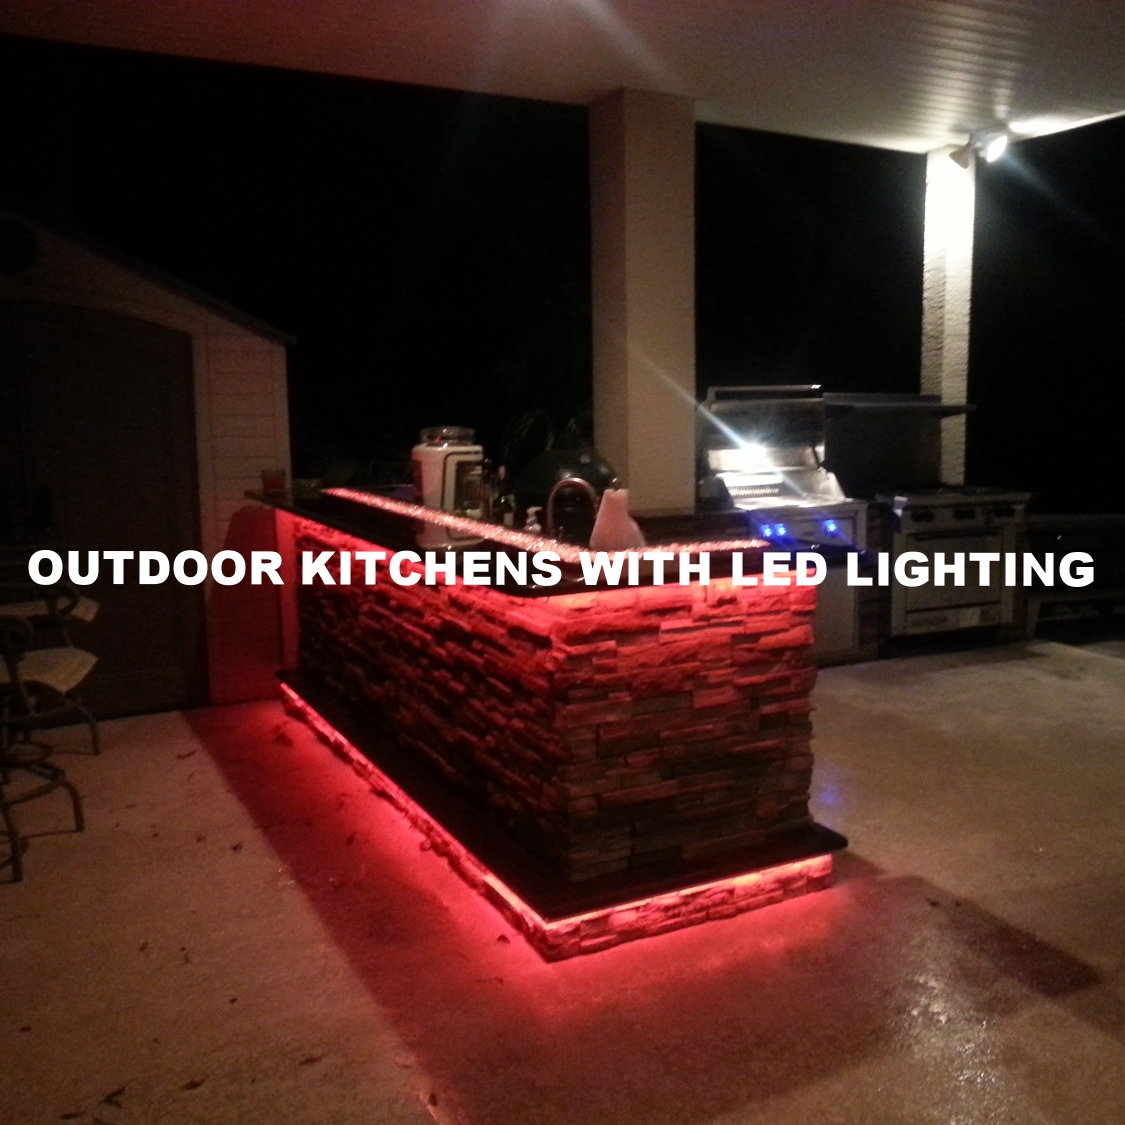 Outdoor Kitchens With LED Lighting (36 Photos)   Premier Outdoor Living U0026  Design